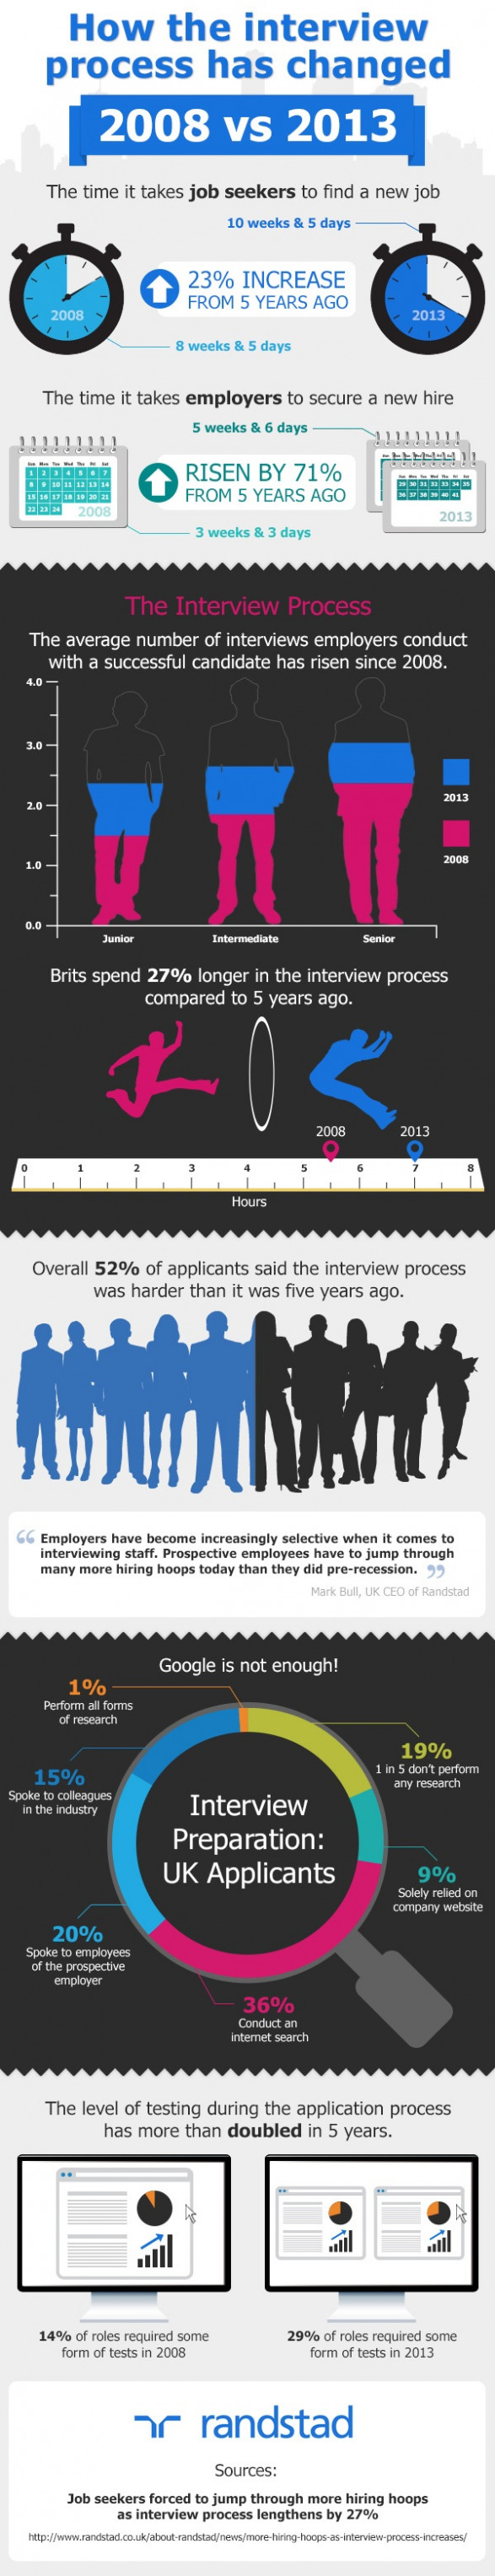 How the interview process has changed